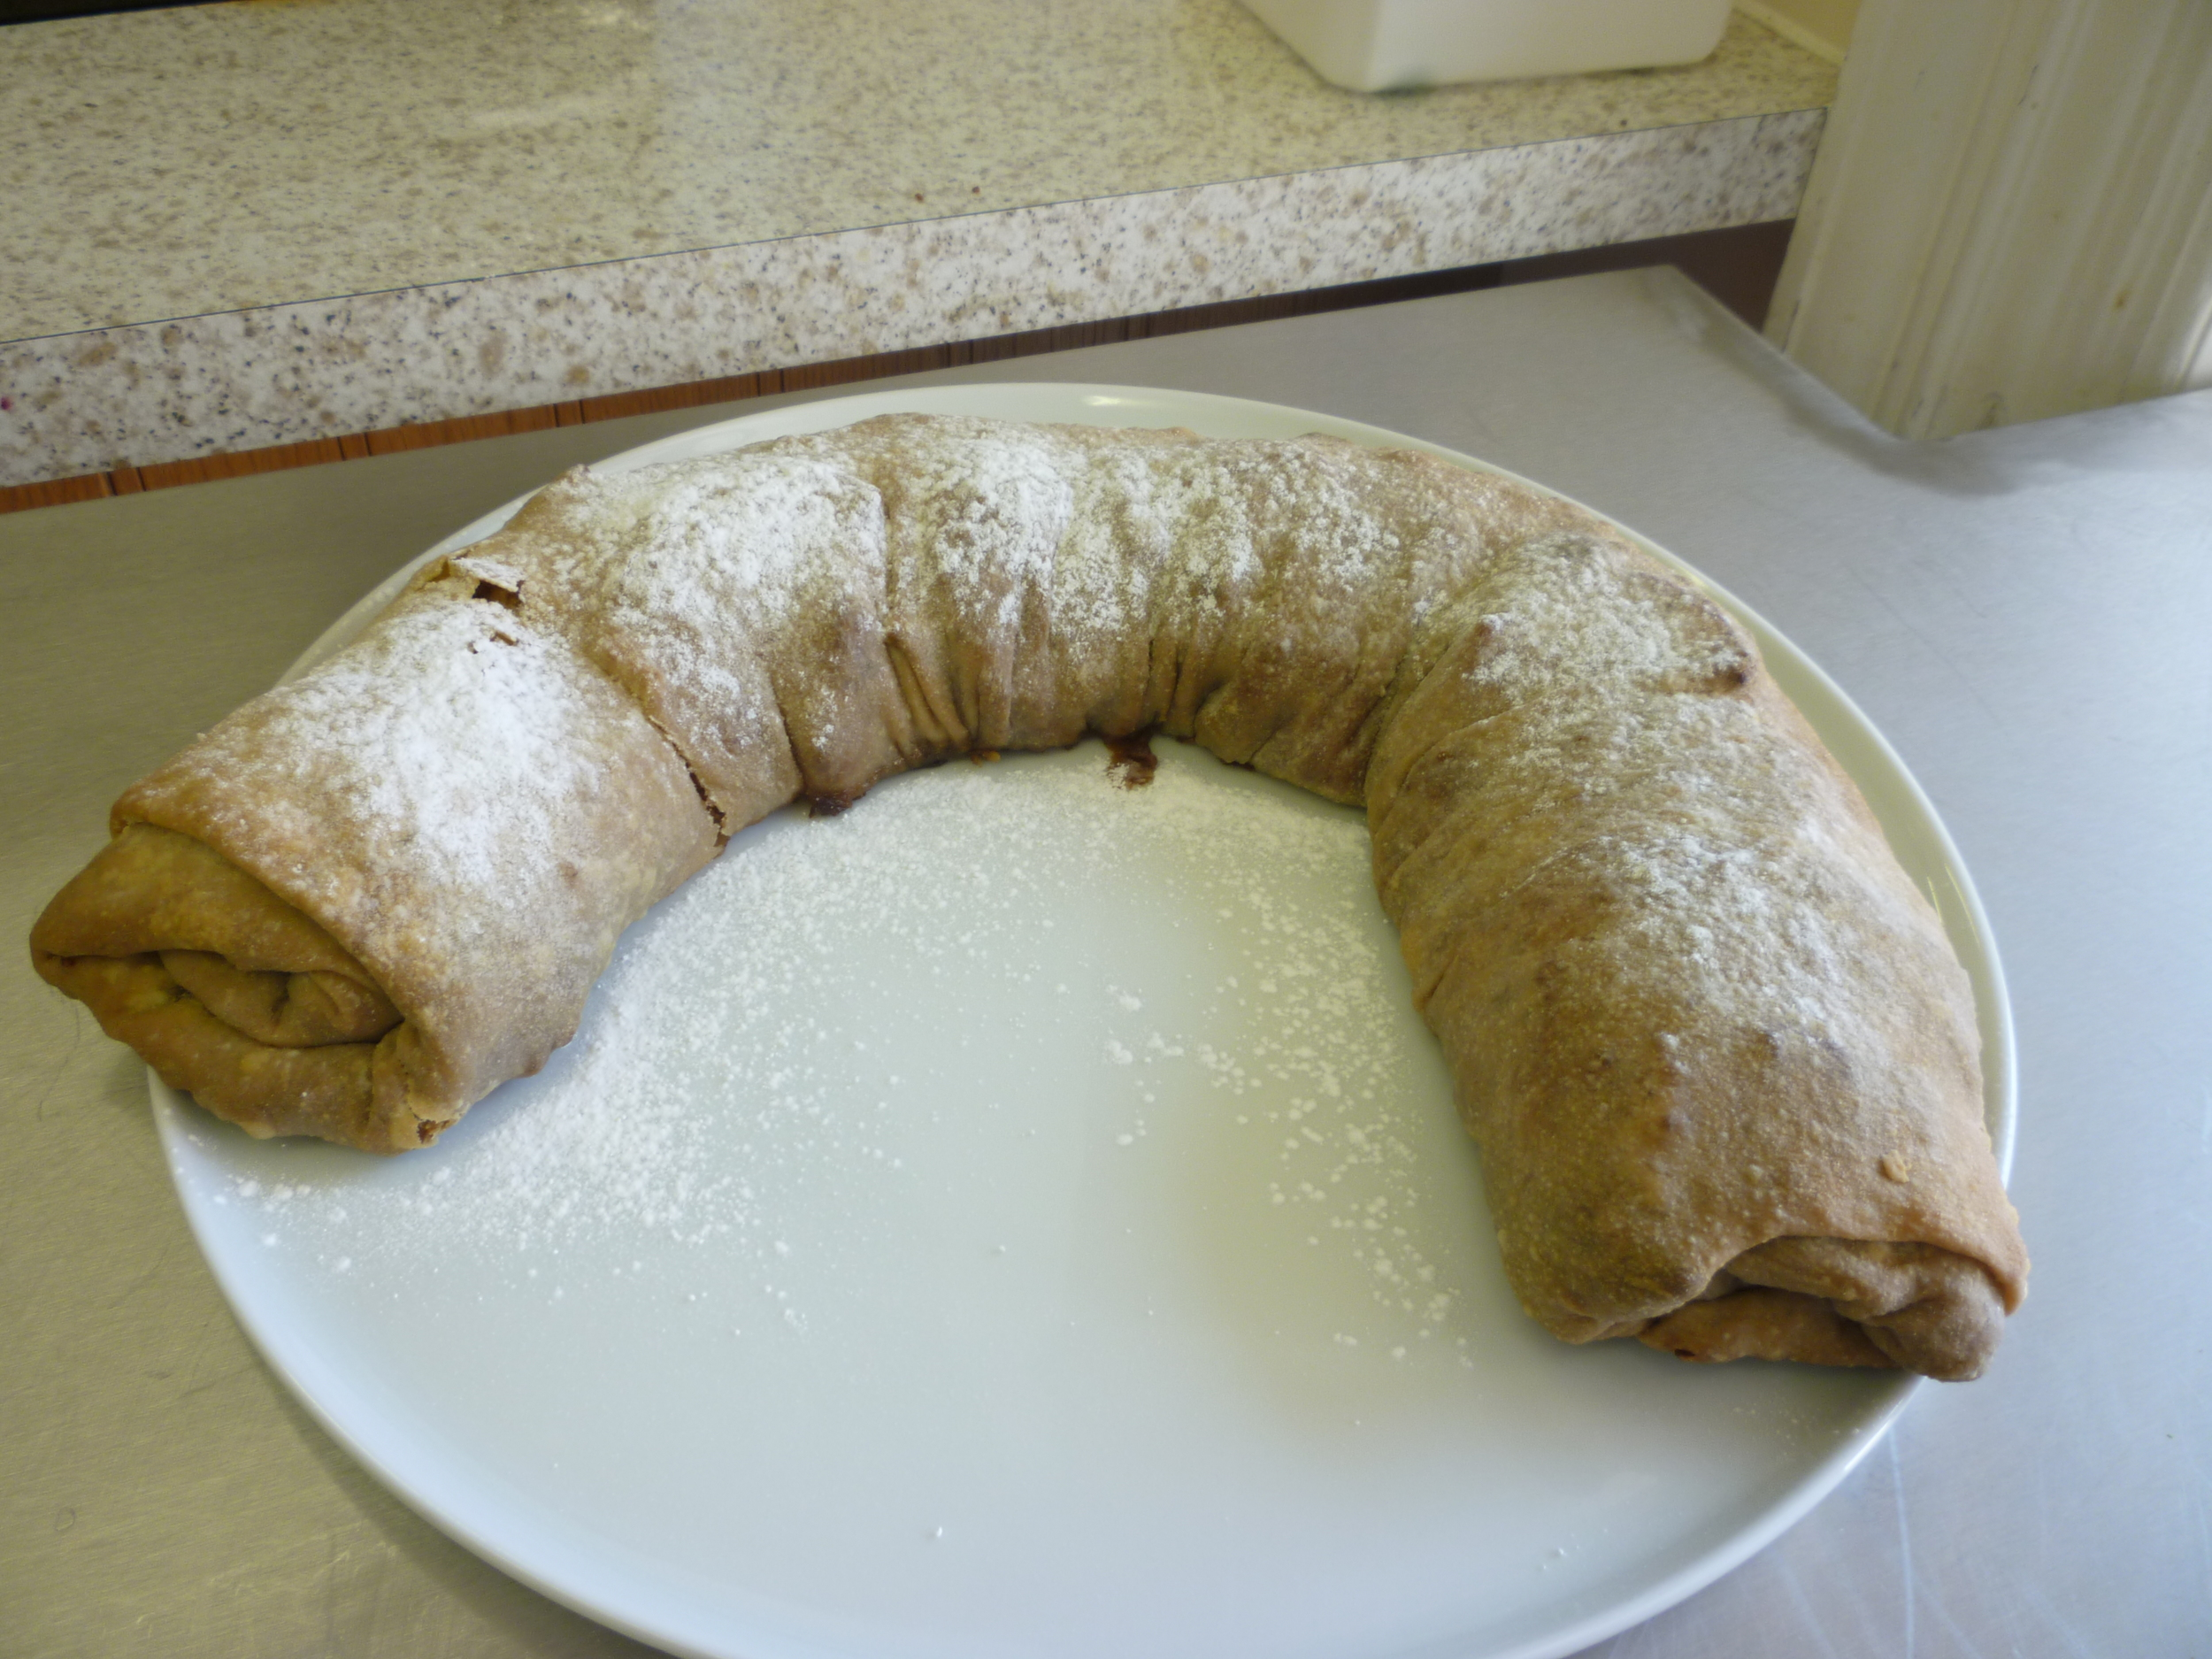 An apple strudel. It may not look like much, but I assure you it was one of the nicest desserts we've made so far.